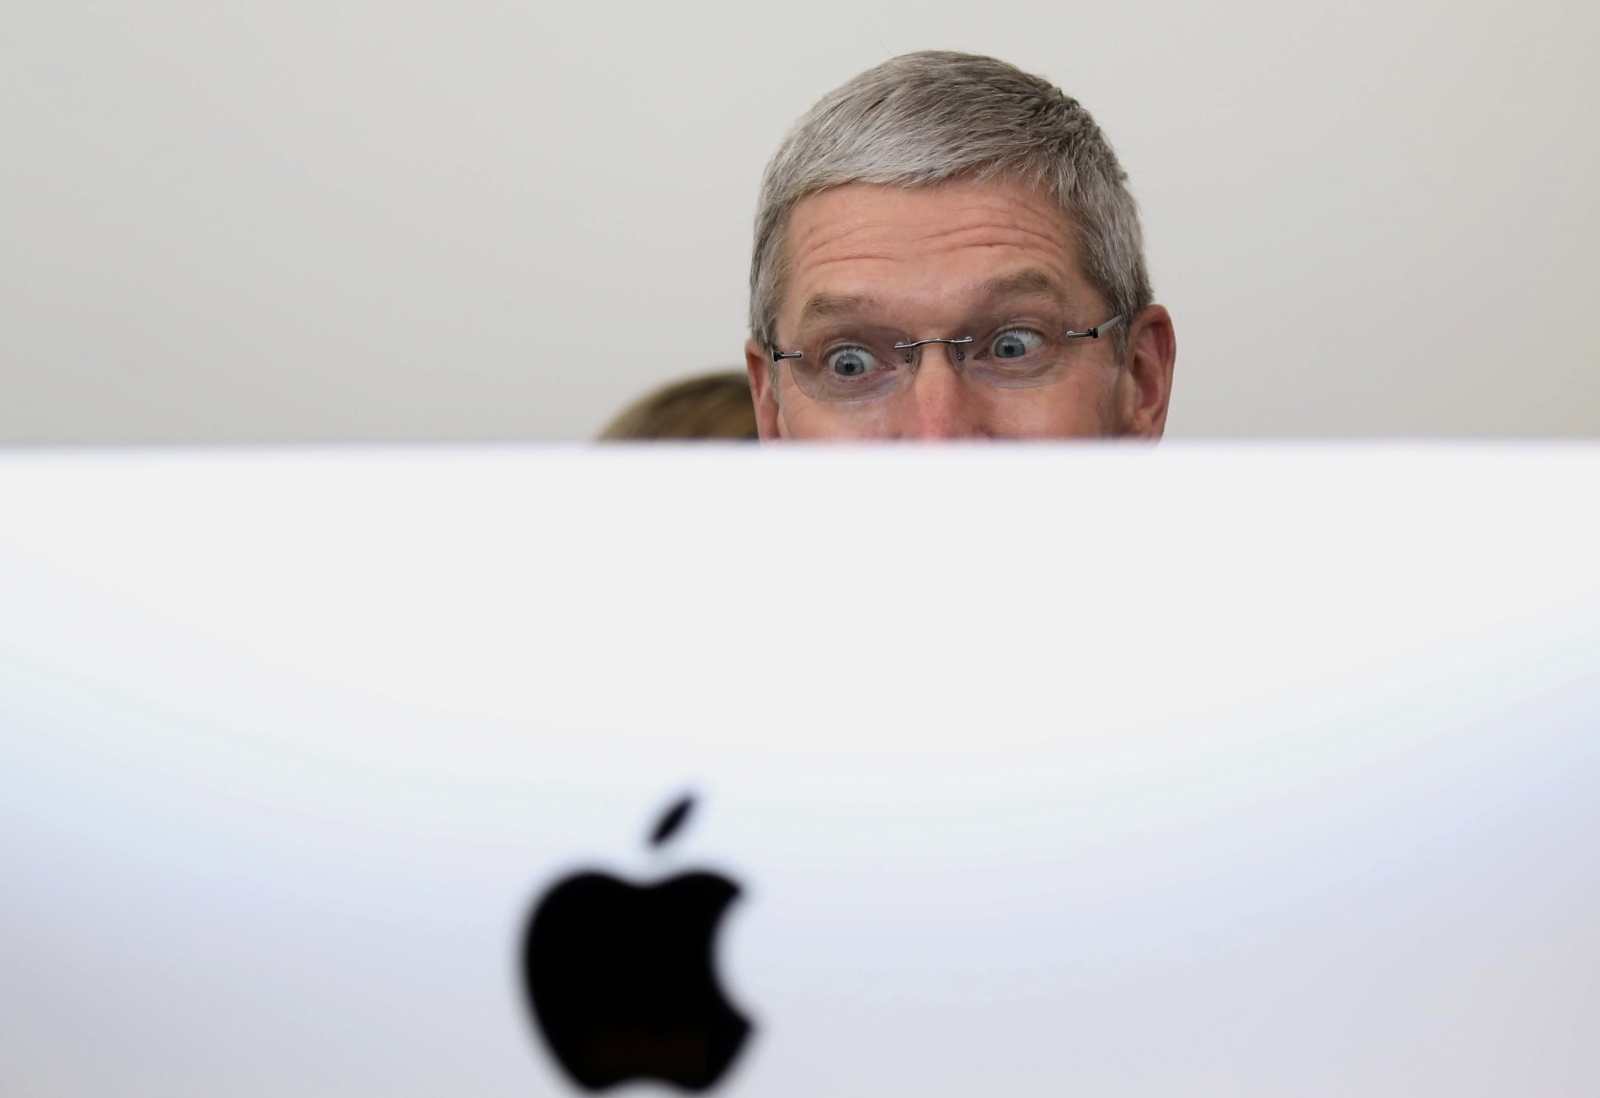 Apple CEO Tim Cook looks at a new IMac after a presentation at Apple headquarters in Cupertino, California October 16, 2014